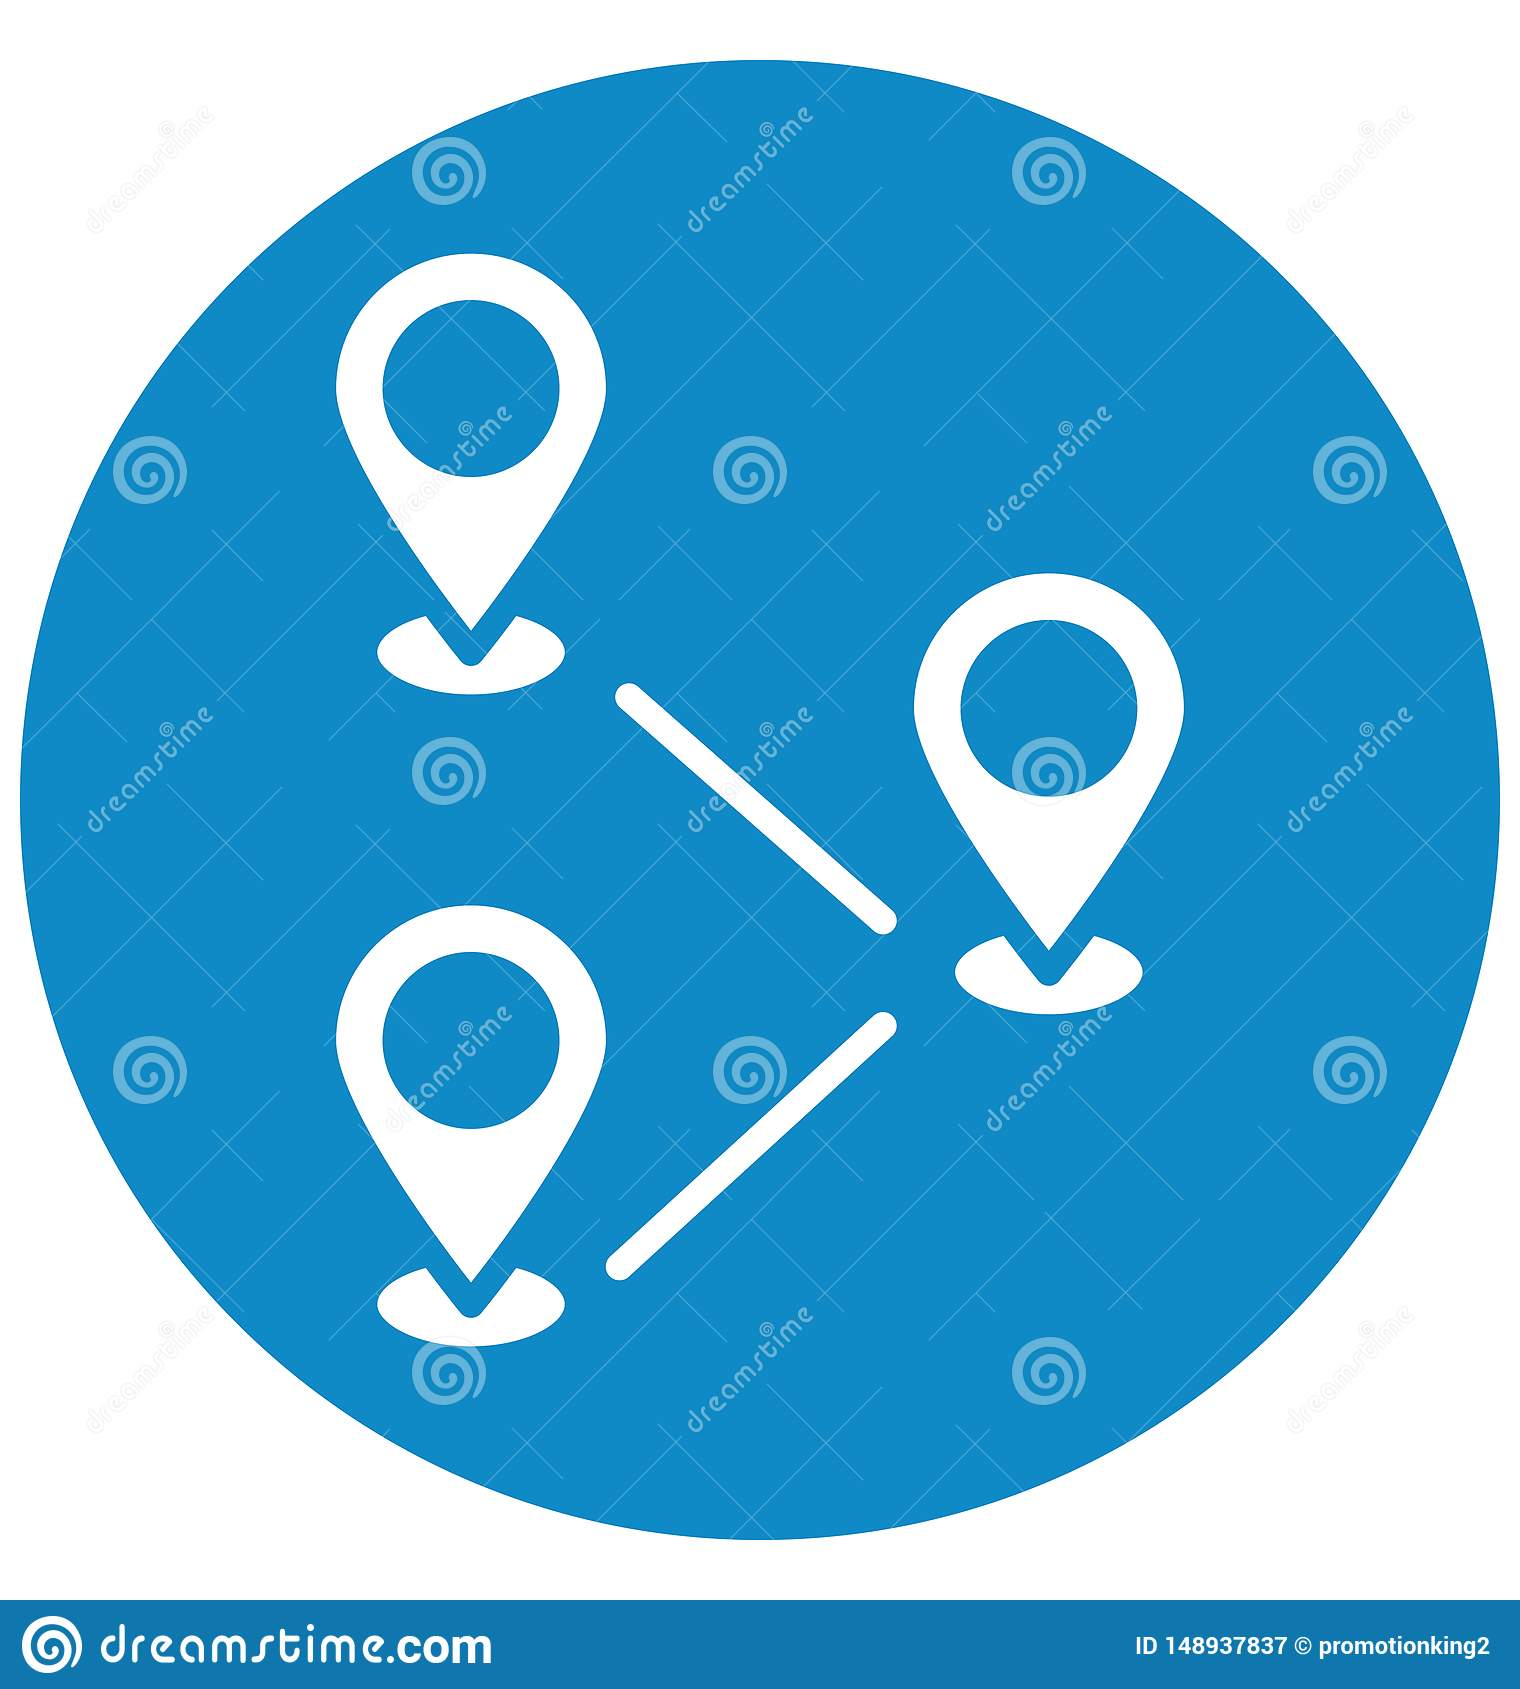 Destinations Isolated Vector Icon which can easily modify or edit